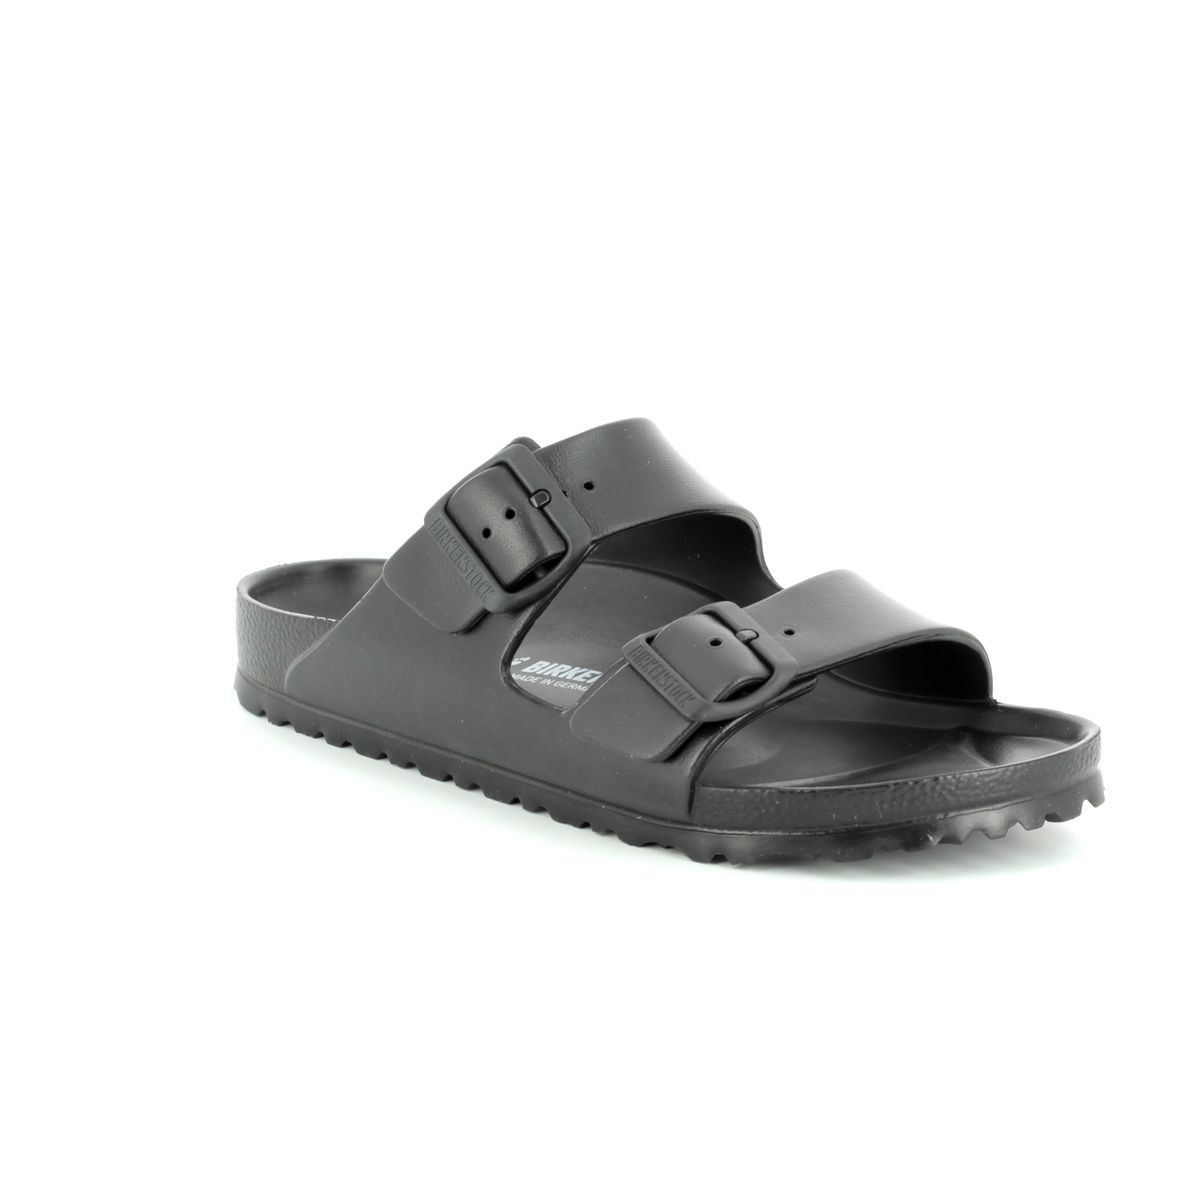 a023b4a4ed7 Birkenstock Sandals - Black - 129 423 ARIZONA EVA Narrow Fit